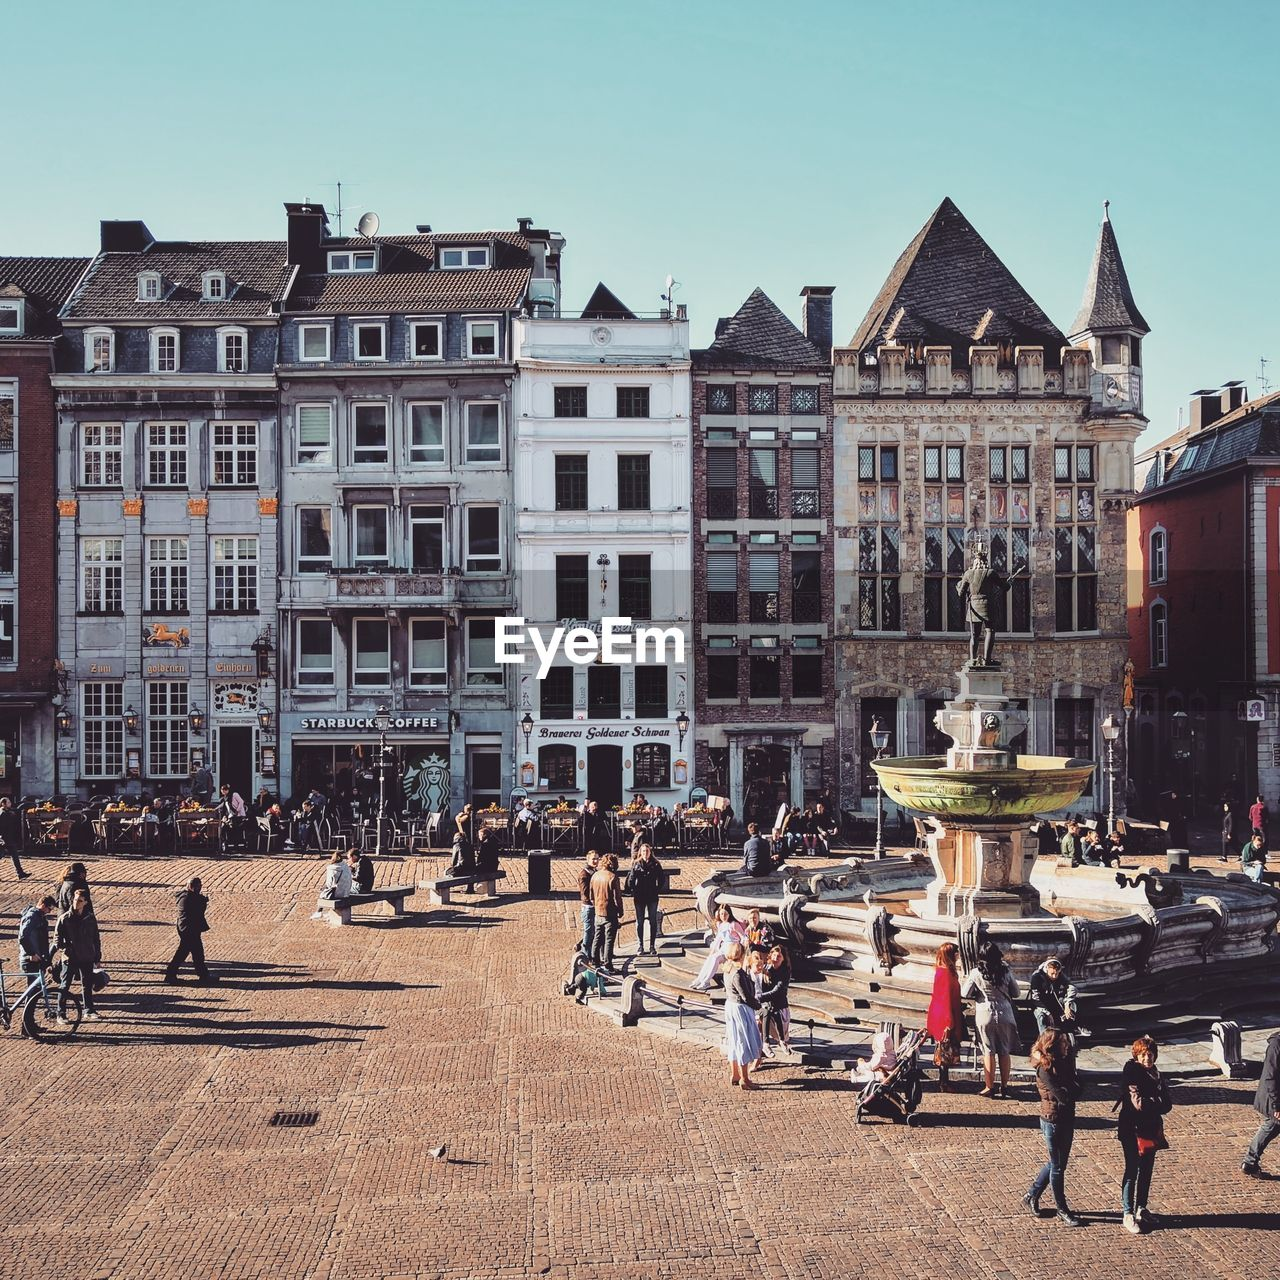 building exterior, architecture, built structure, group of people, crowd, large group of people, real people, building, city, street, women, men, sky, day, nature, clear sky, residential district, adult, city life, lifestyles, outdoors